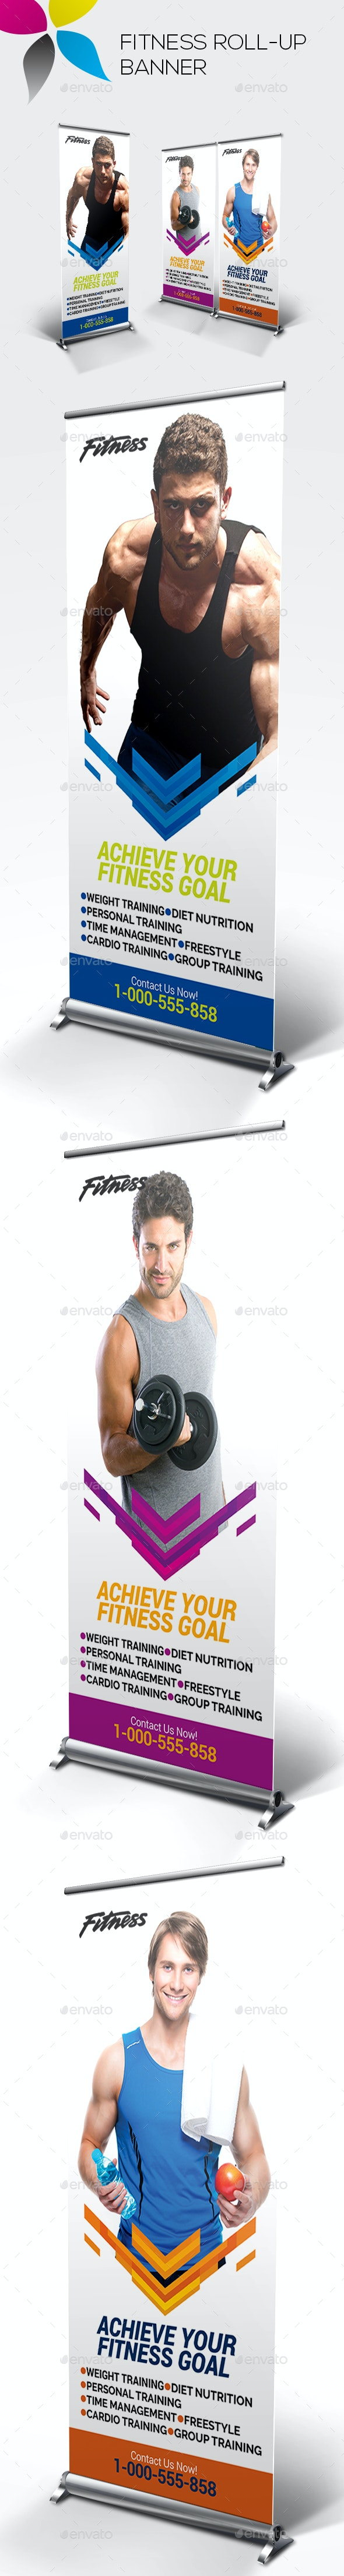 Fitness Roll-up Banner - Signage Print Templates